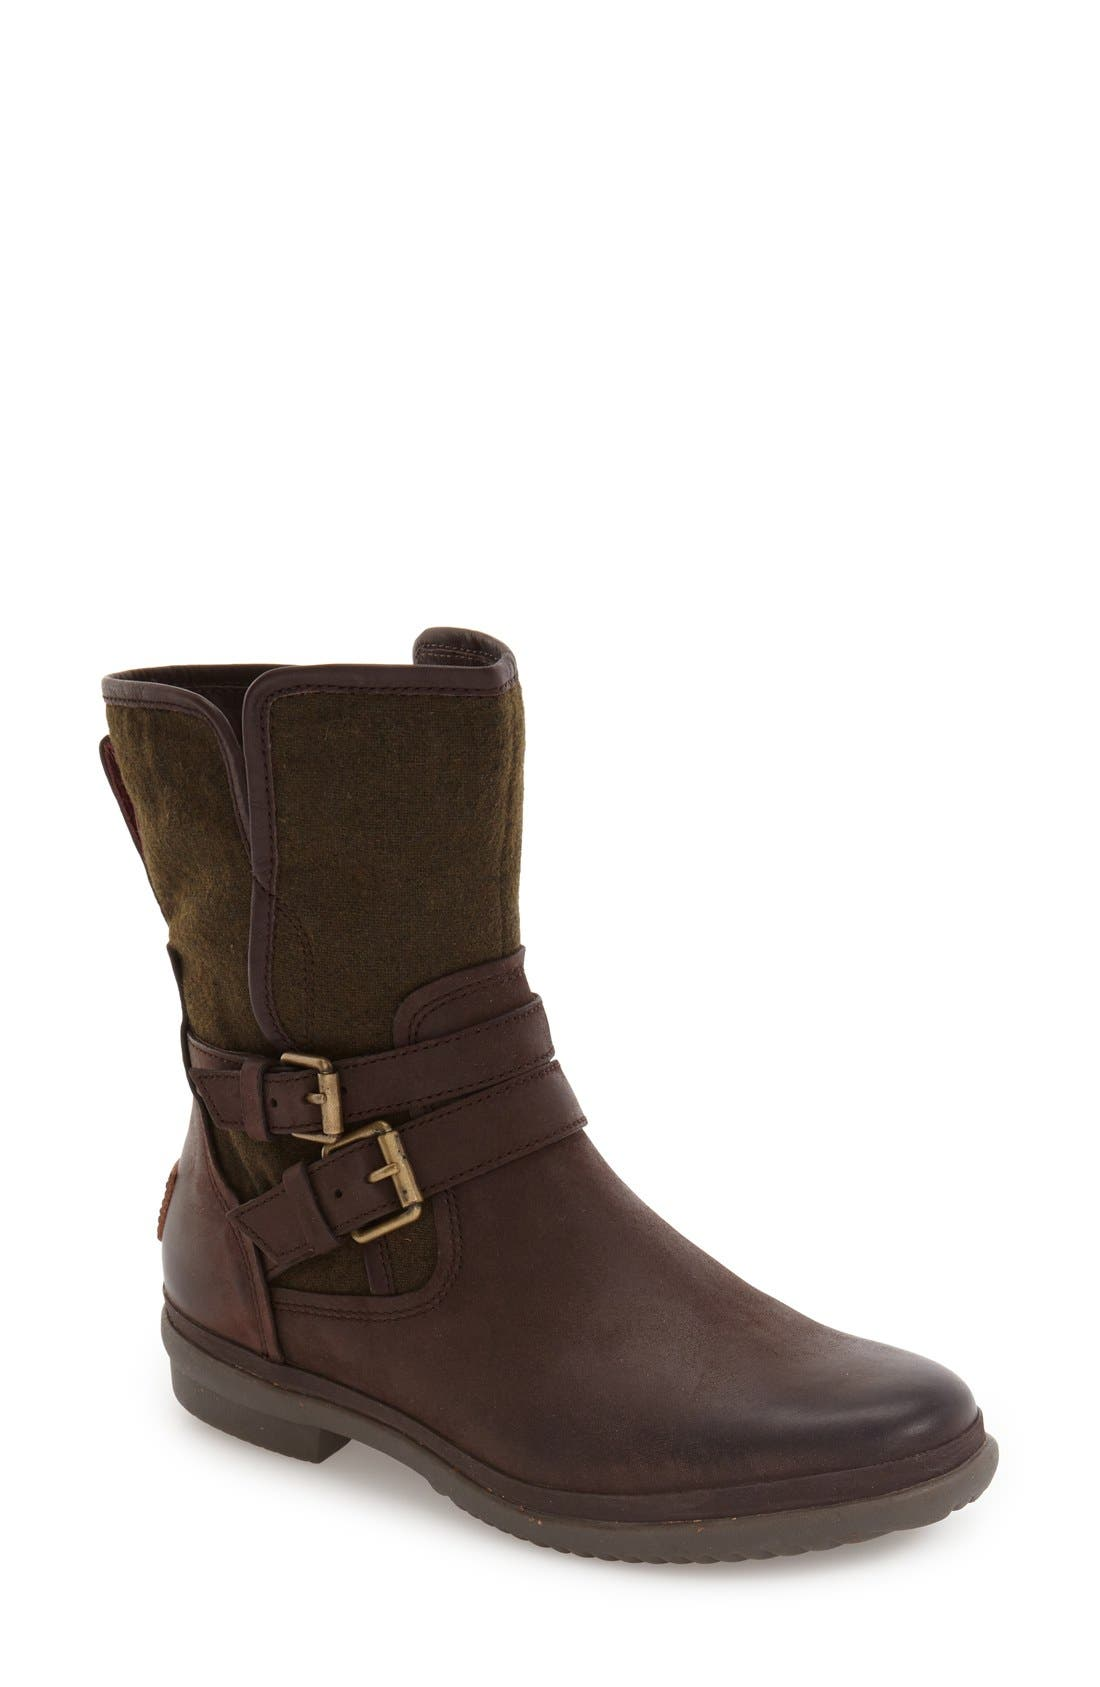 Alternate Image 1 Selected - UGG® Simmens Waterproof Leather Boot (Women)